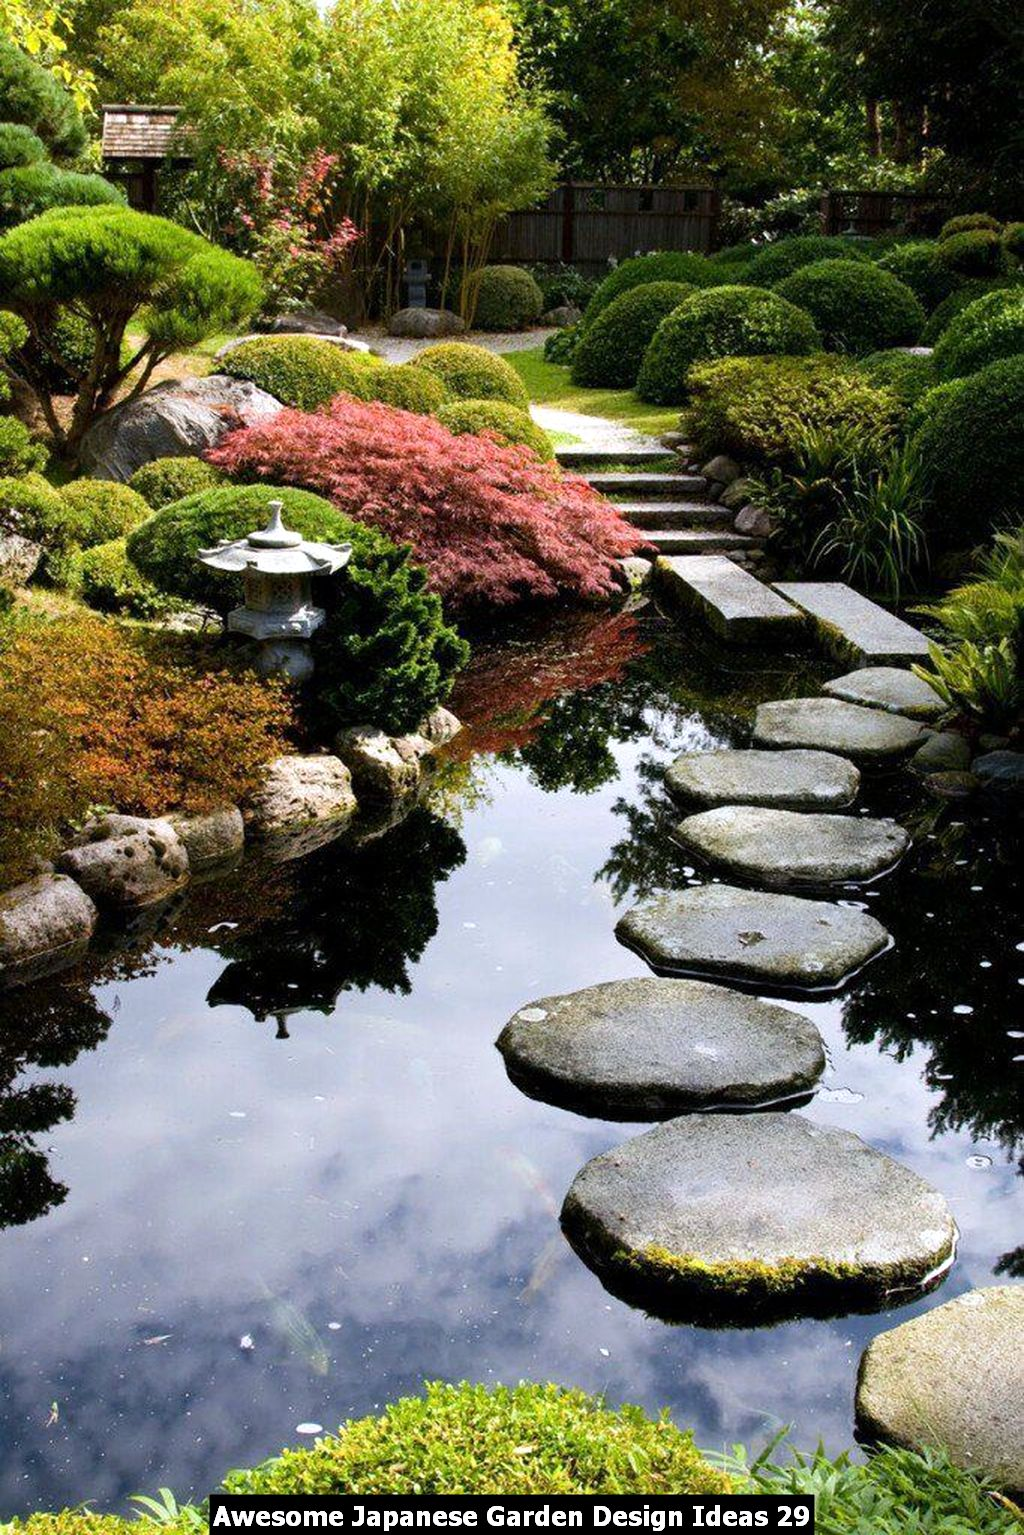 Awesome Japanese Garden Design Ideas 29